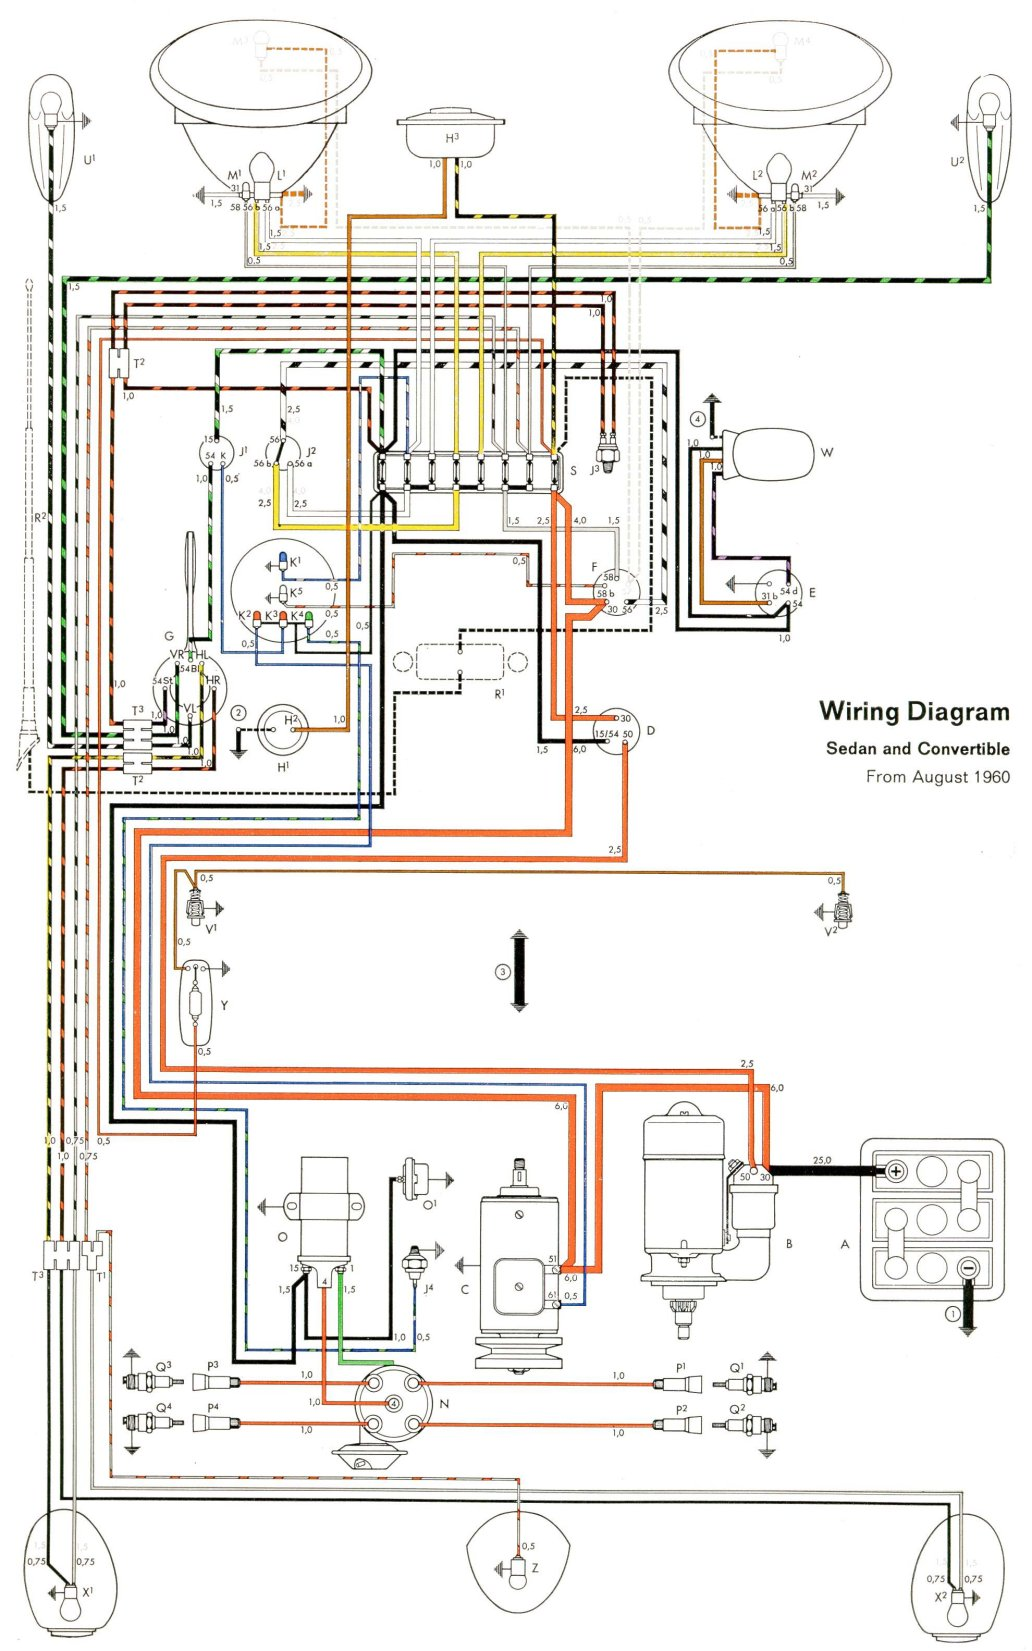 1973 Super Beetle Wiring Diagram Free For You Nova Caravan Thesamba Com Type 1 Diagrams Rh Volkswagen 73